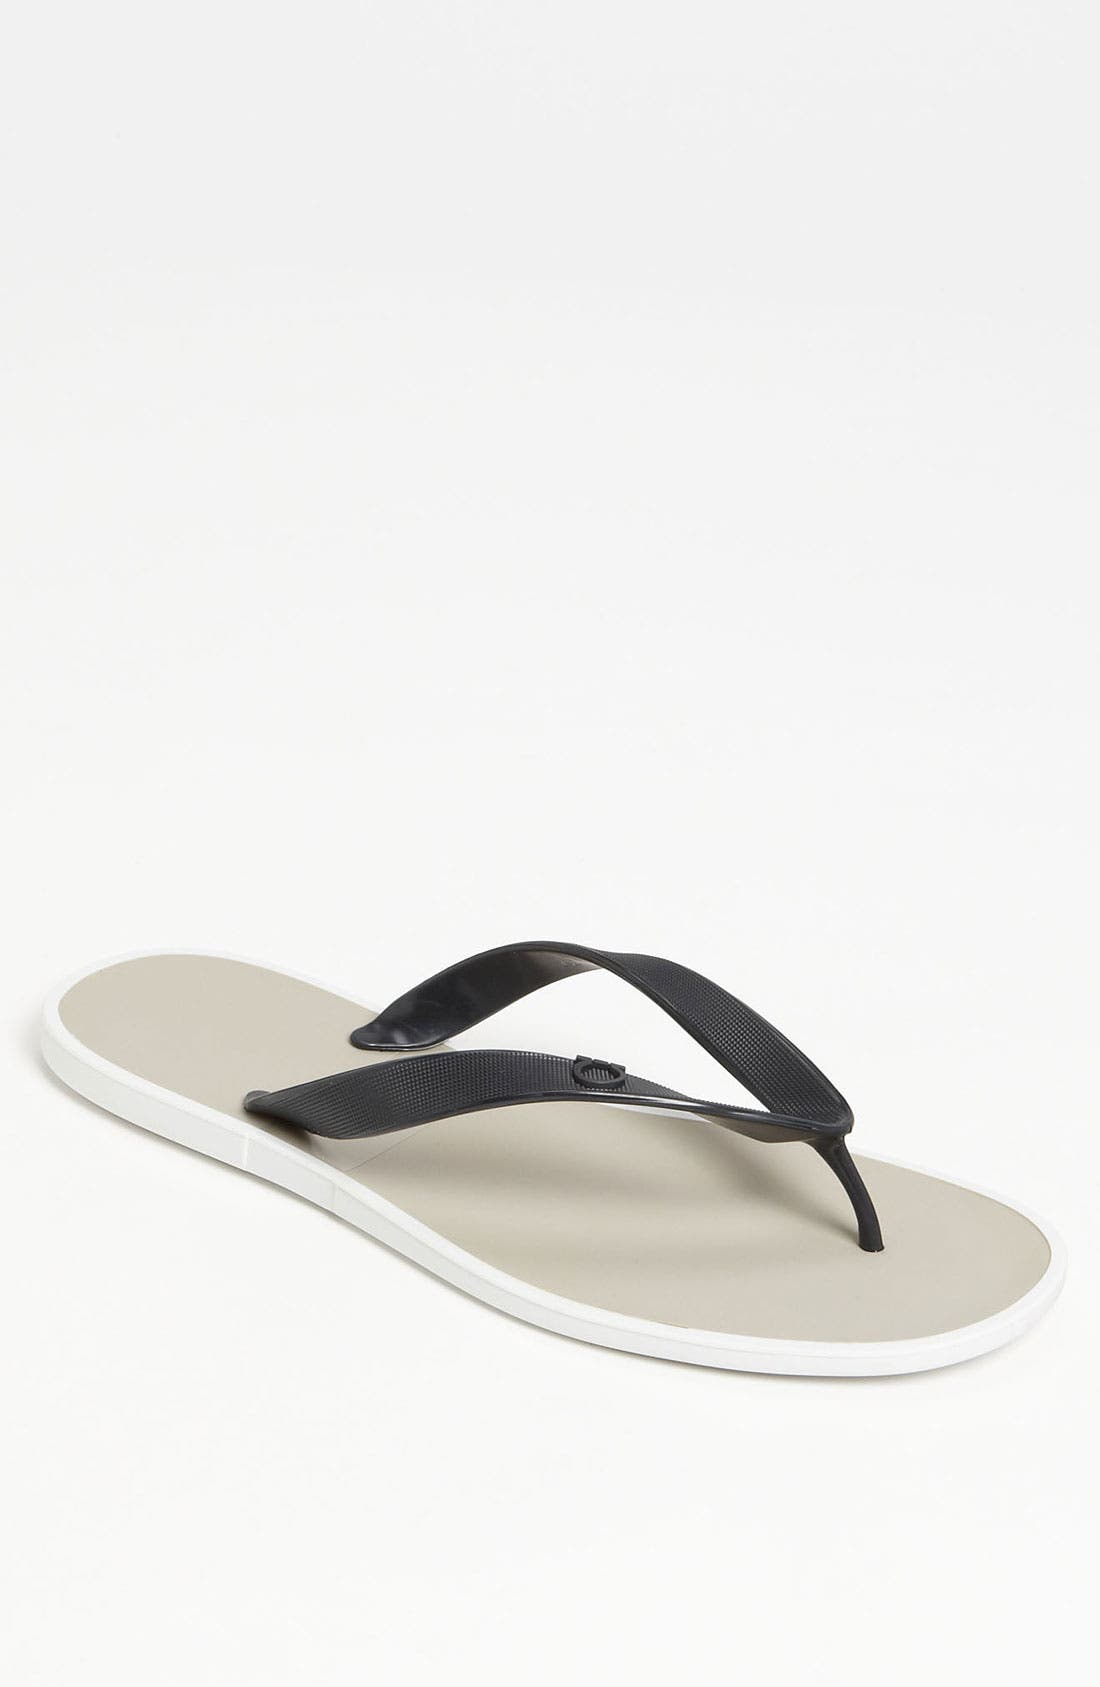 Alternate Image 1 Selected - Salvatore Ferragamo 'Gym' Flip Flop